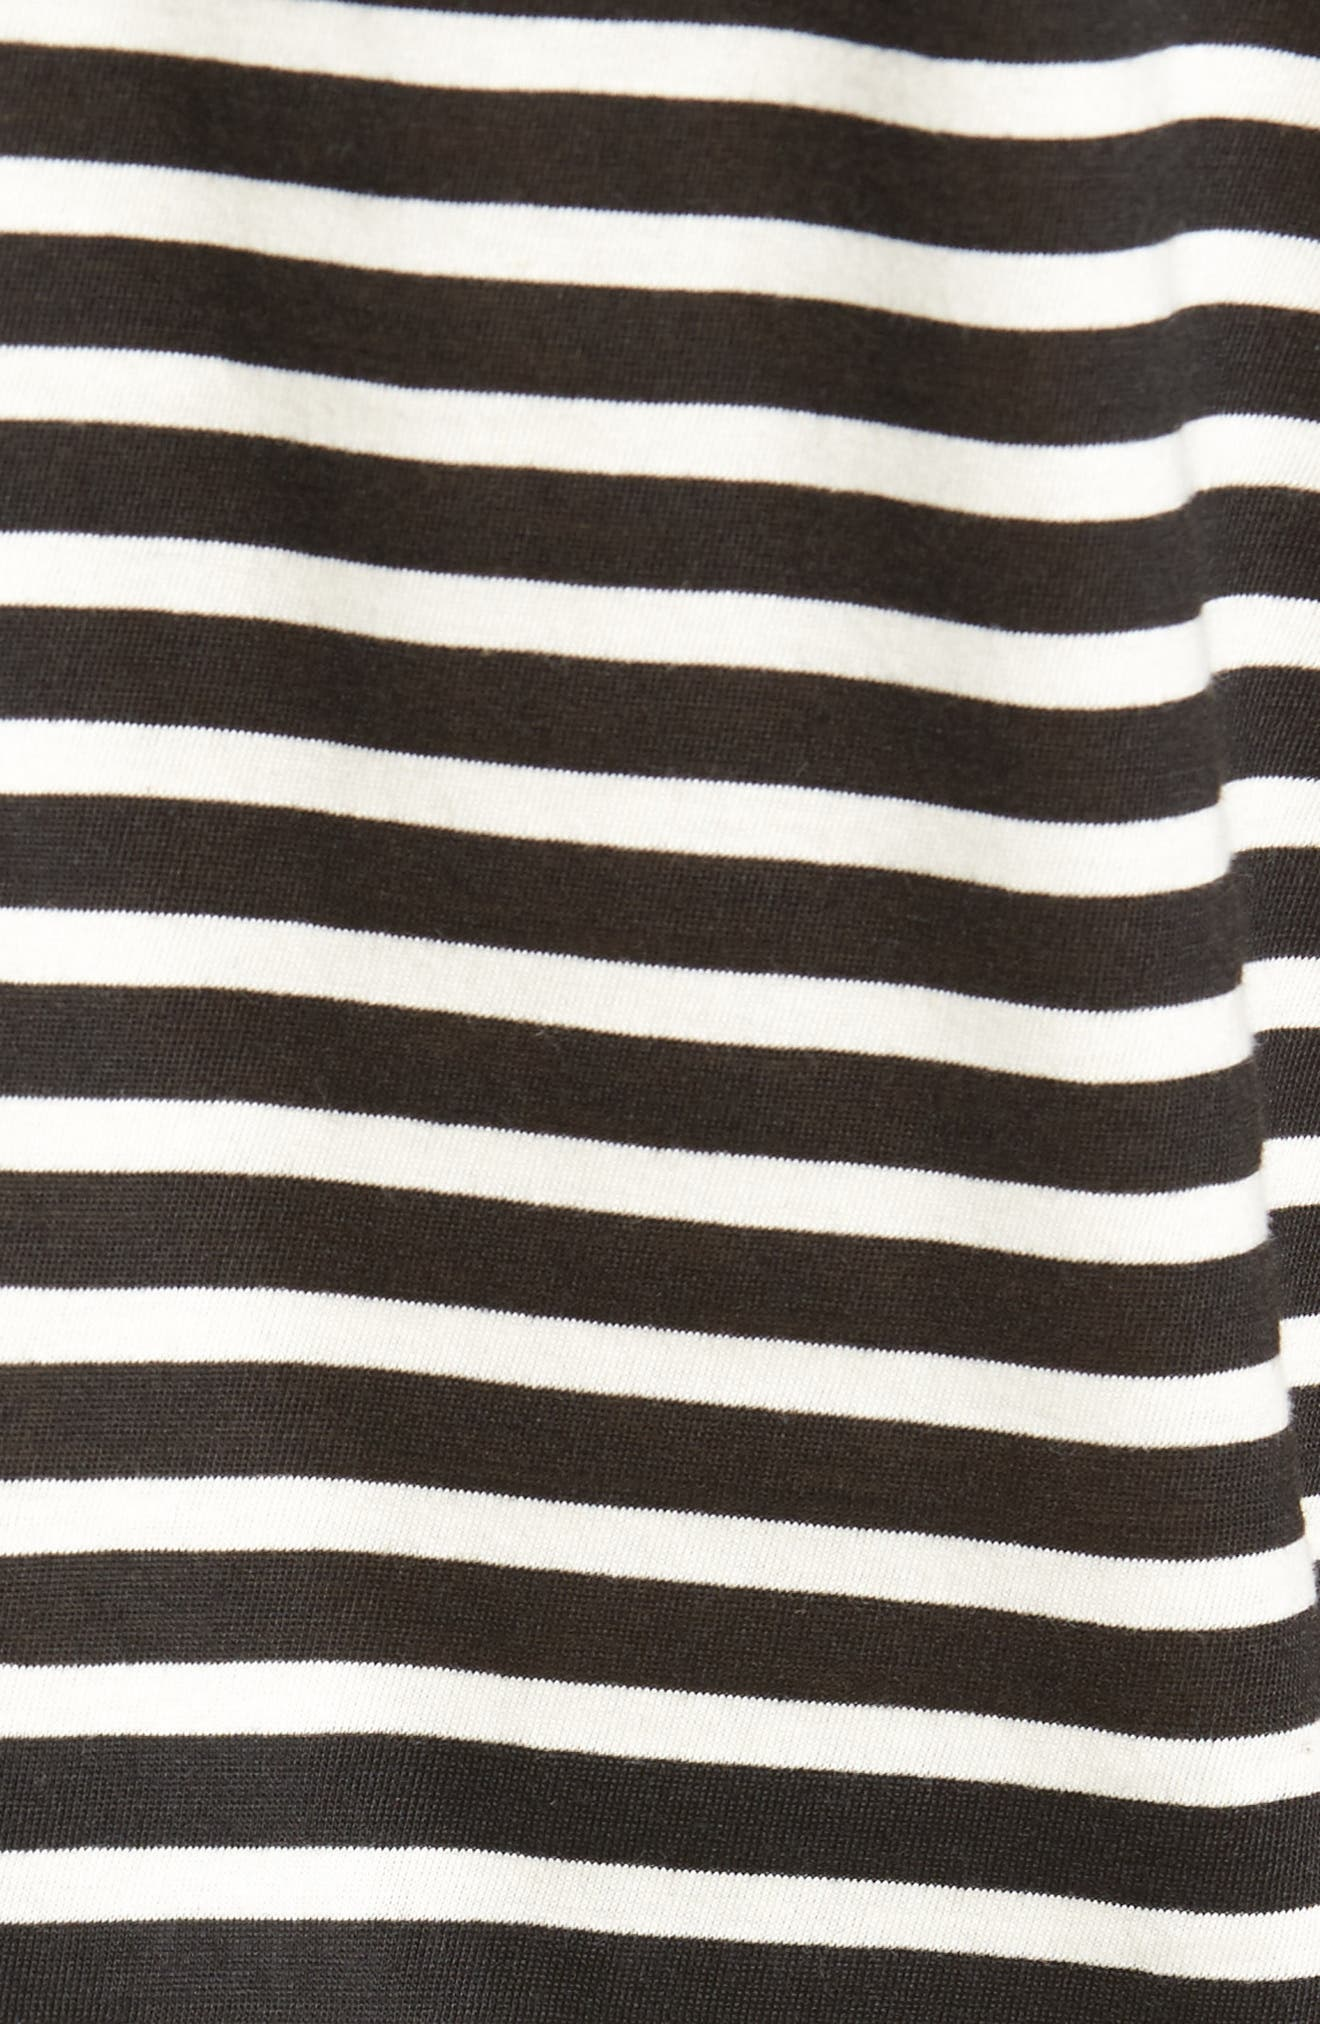 Spliced Stripe T-Shirt,                             Alternate thumbnail 5, color,                             001